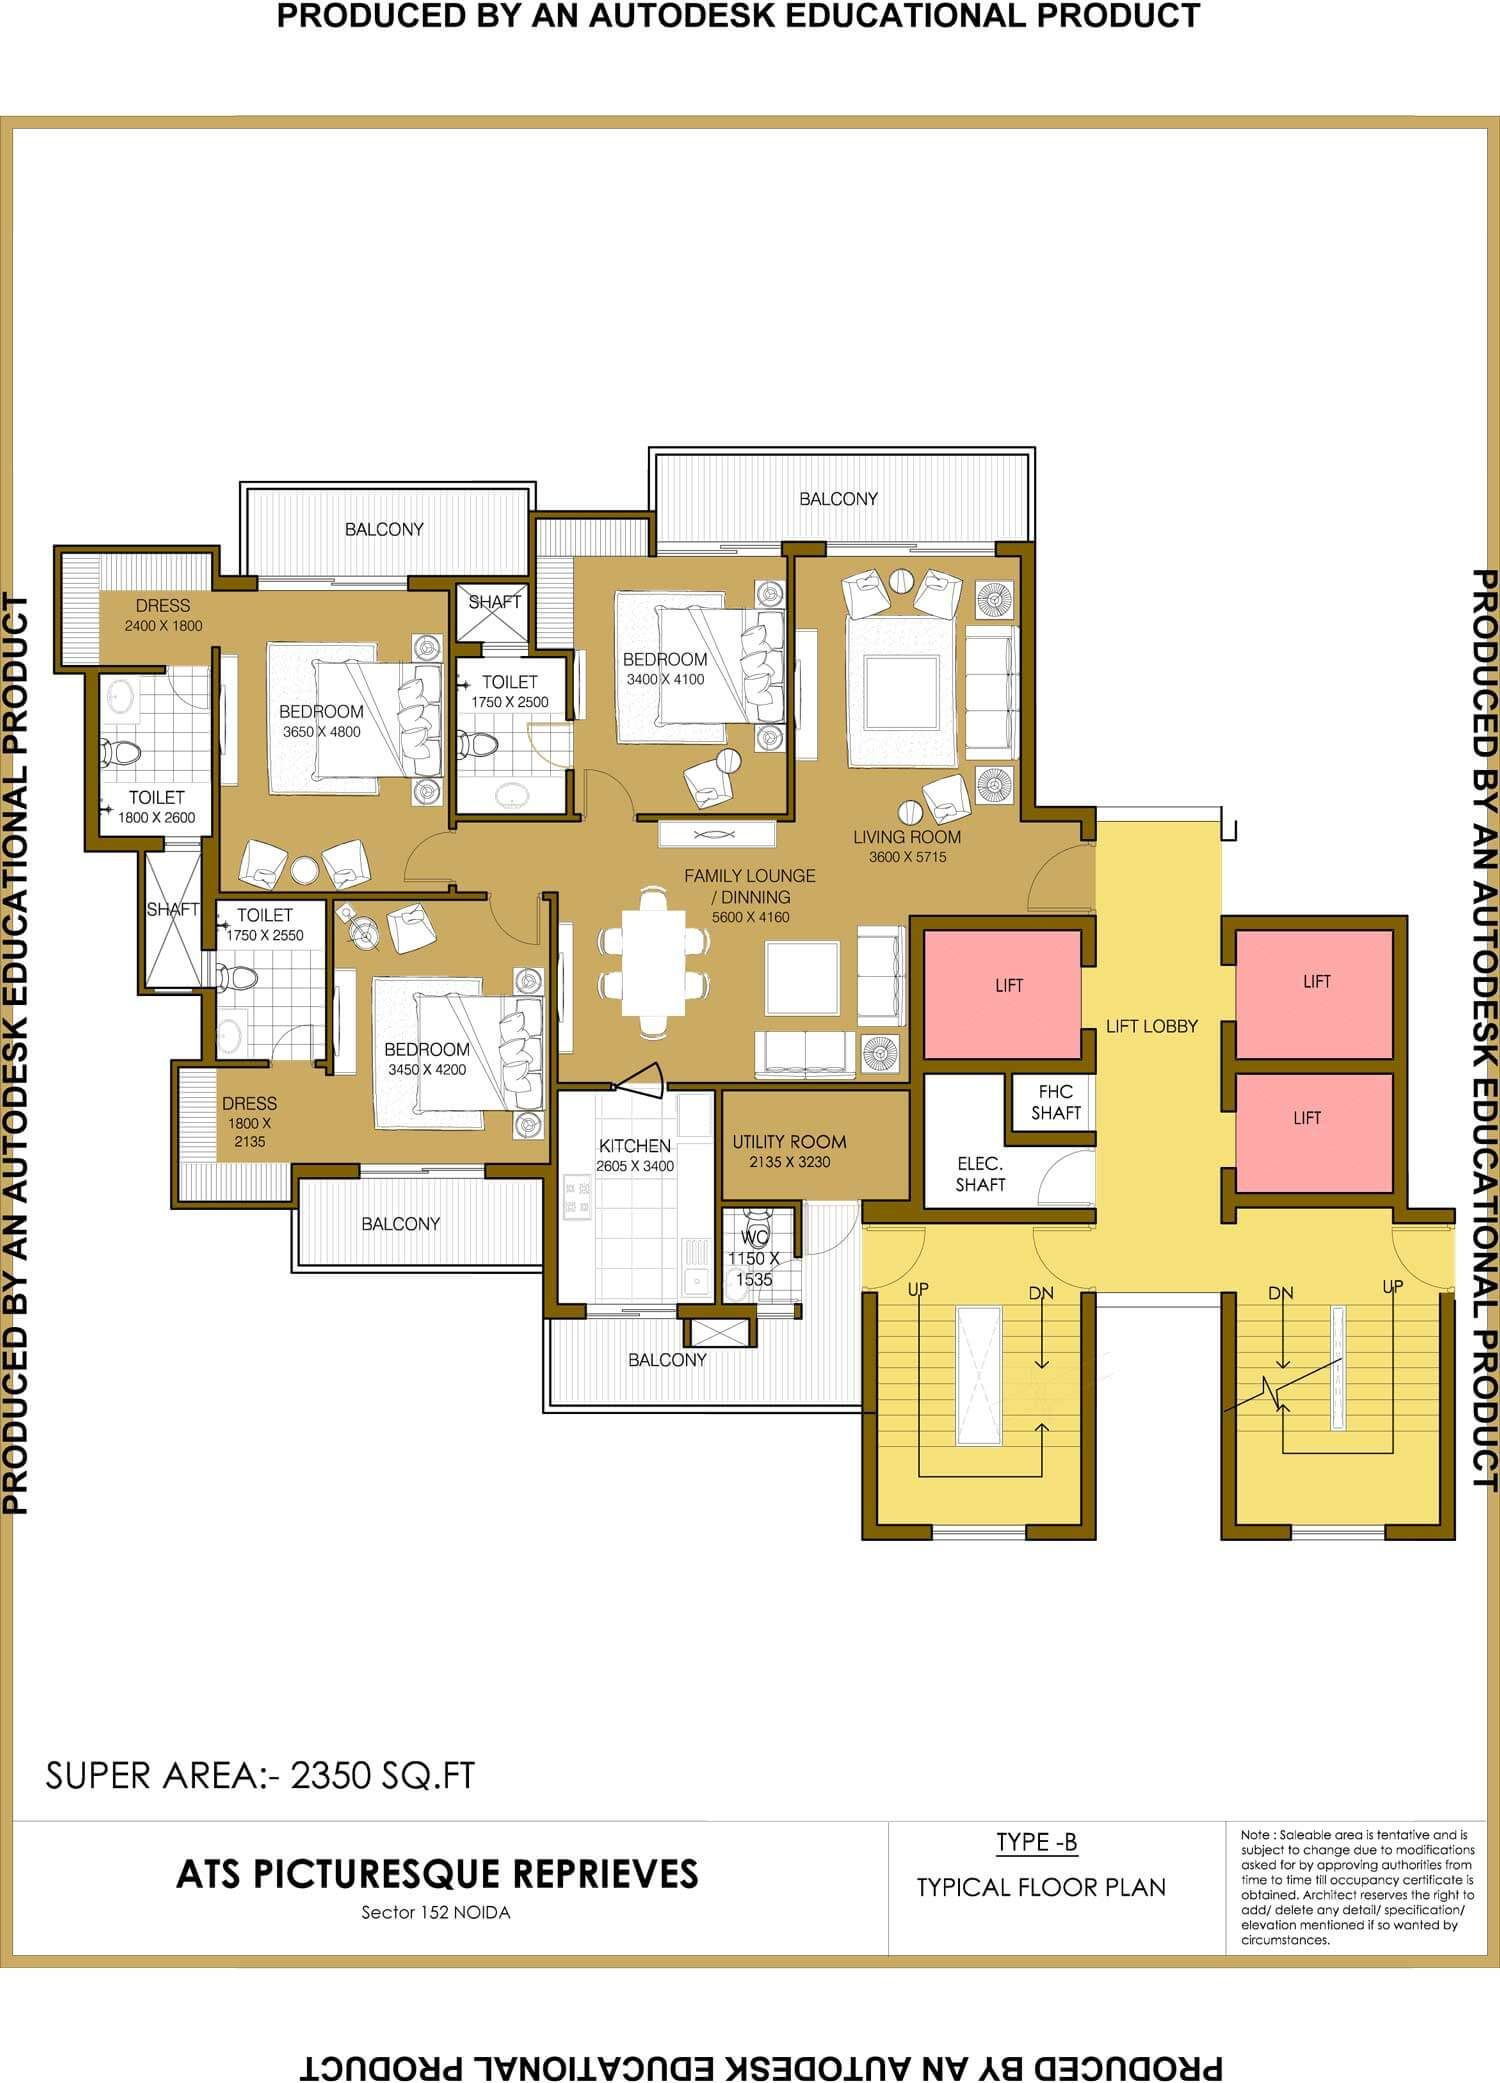 Ats Group 9899303232 Presents Residential Project Picturesque Reprievesin Sector 152 Noida Expressway Offers 3 Floor Plansapartments